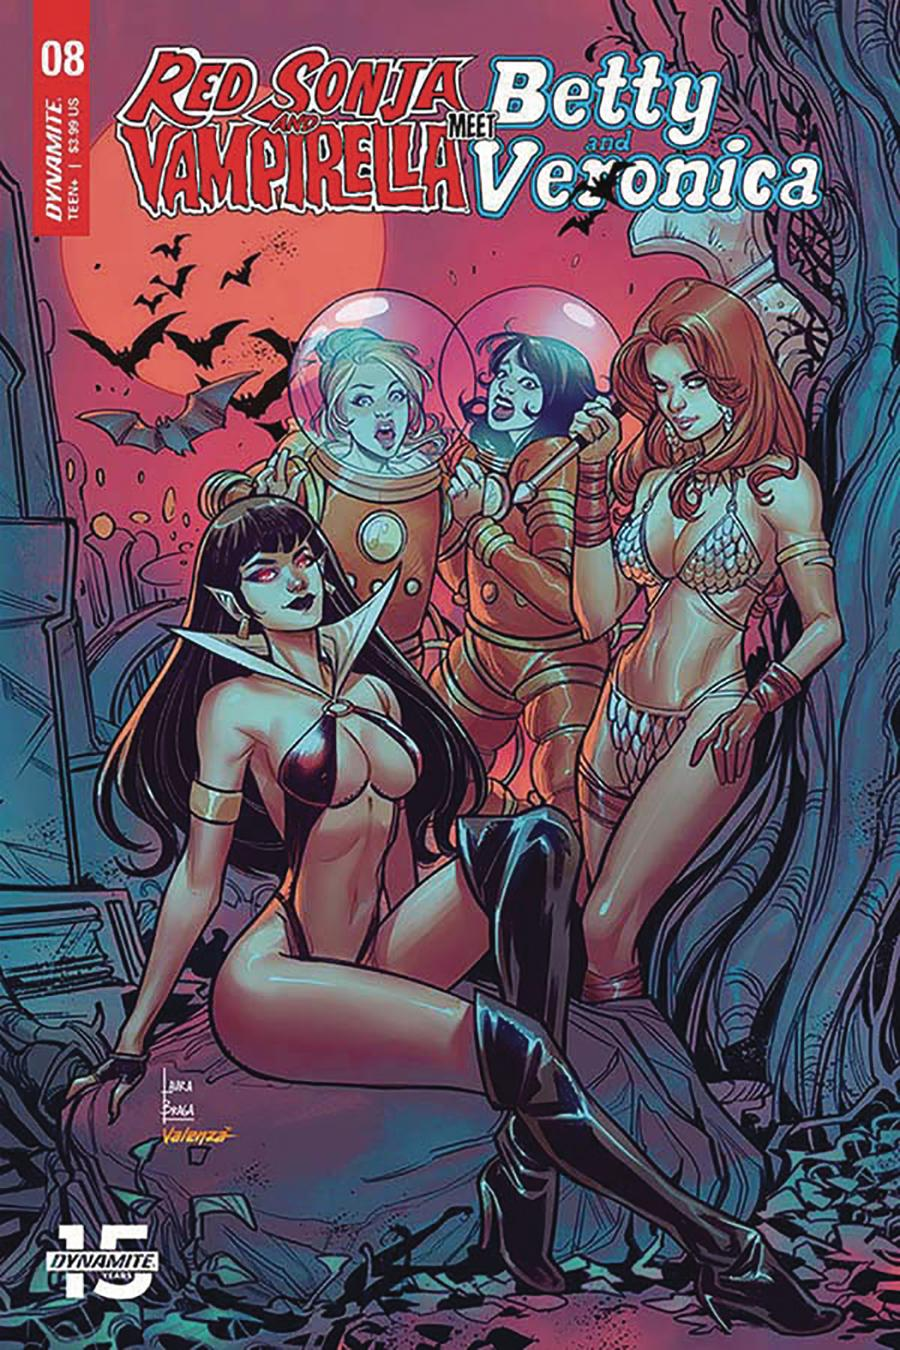 Red Sonja And Vampirella Meet Betty And Veronica #8 Cover C Variant Laura Braga Cover